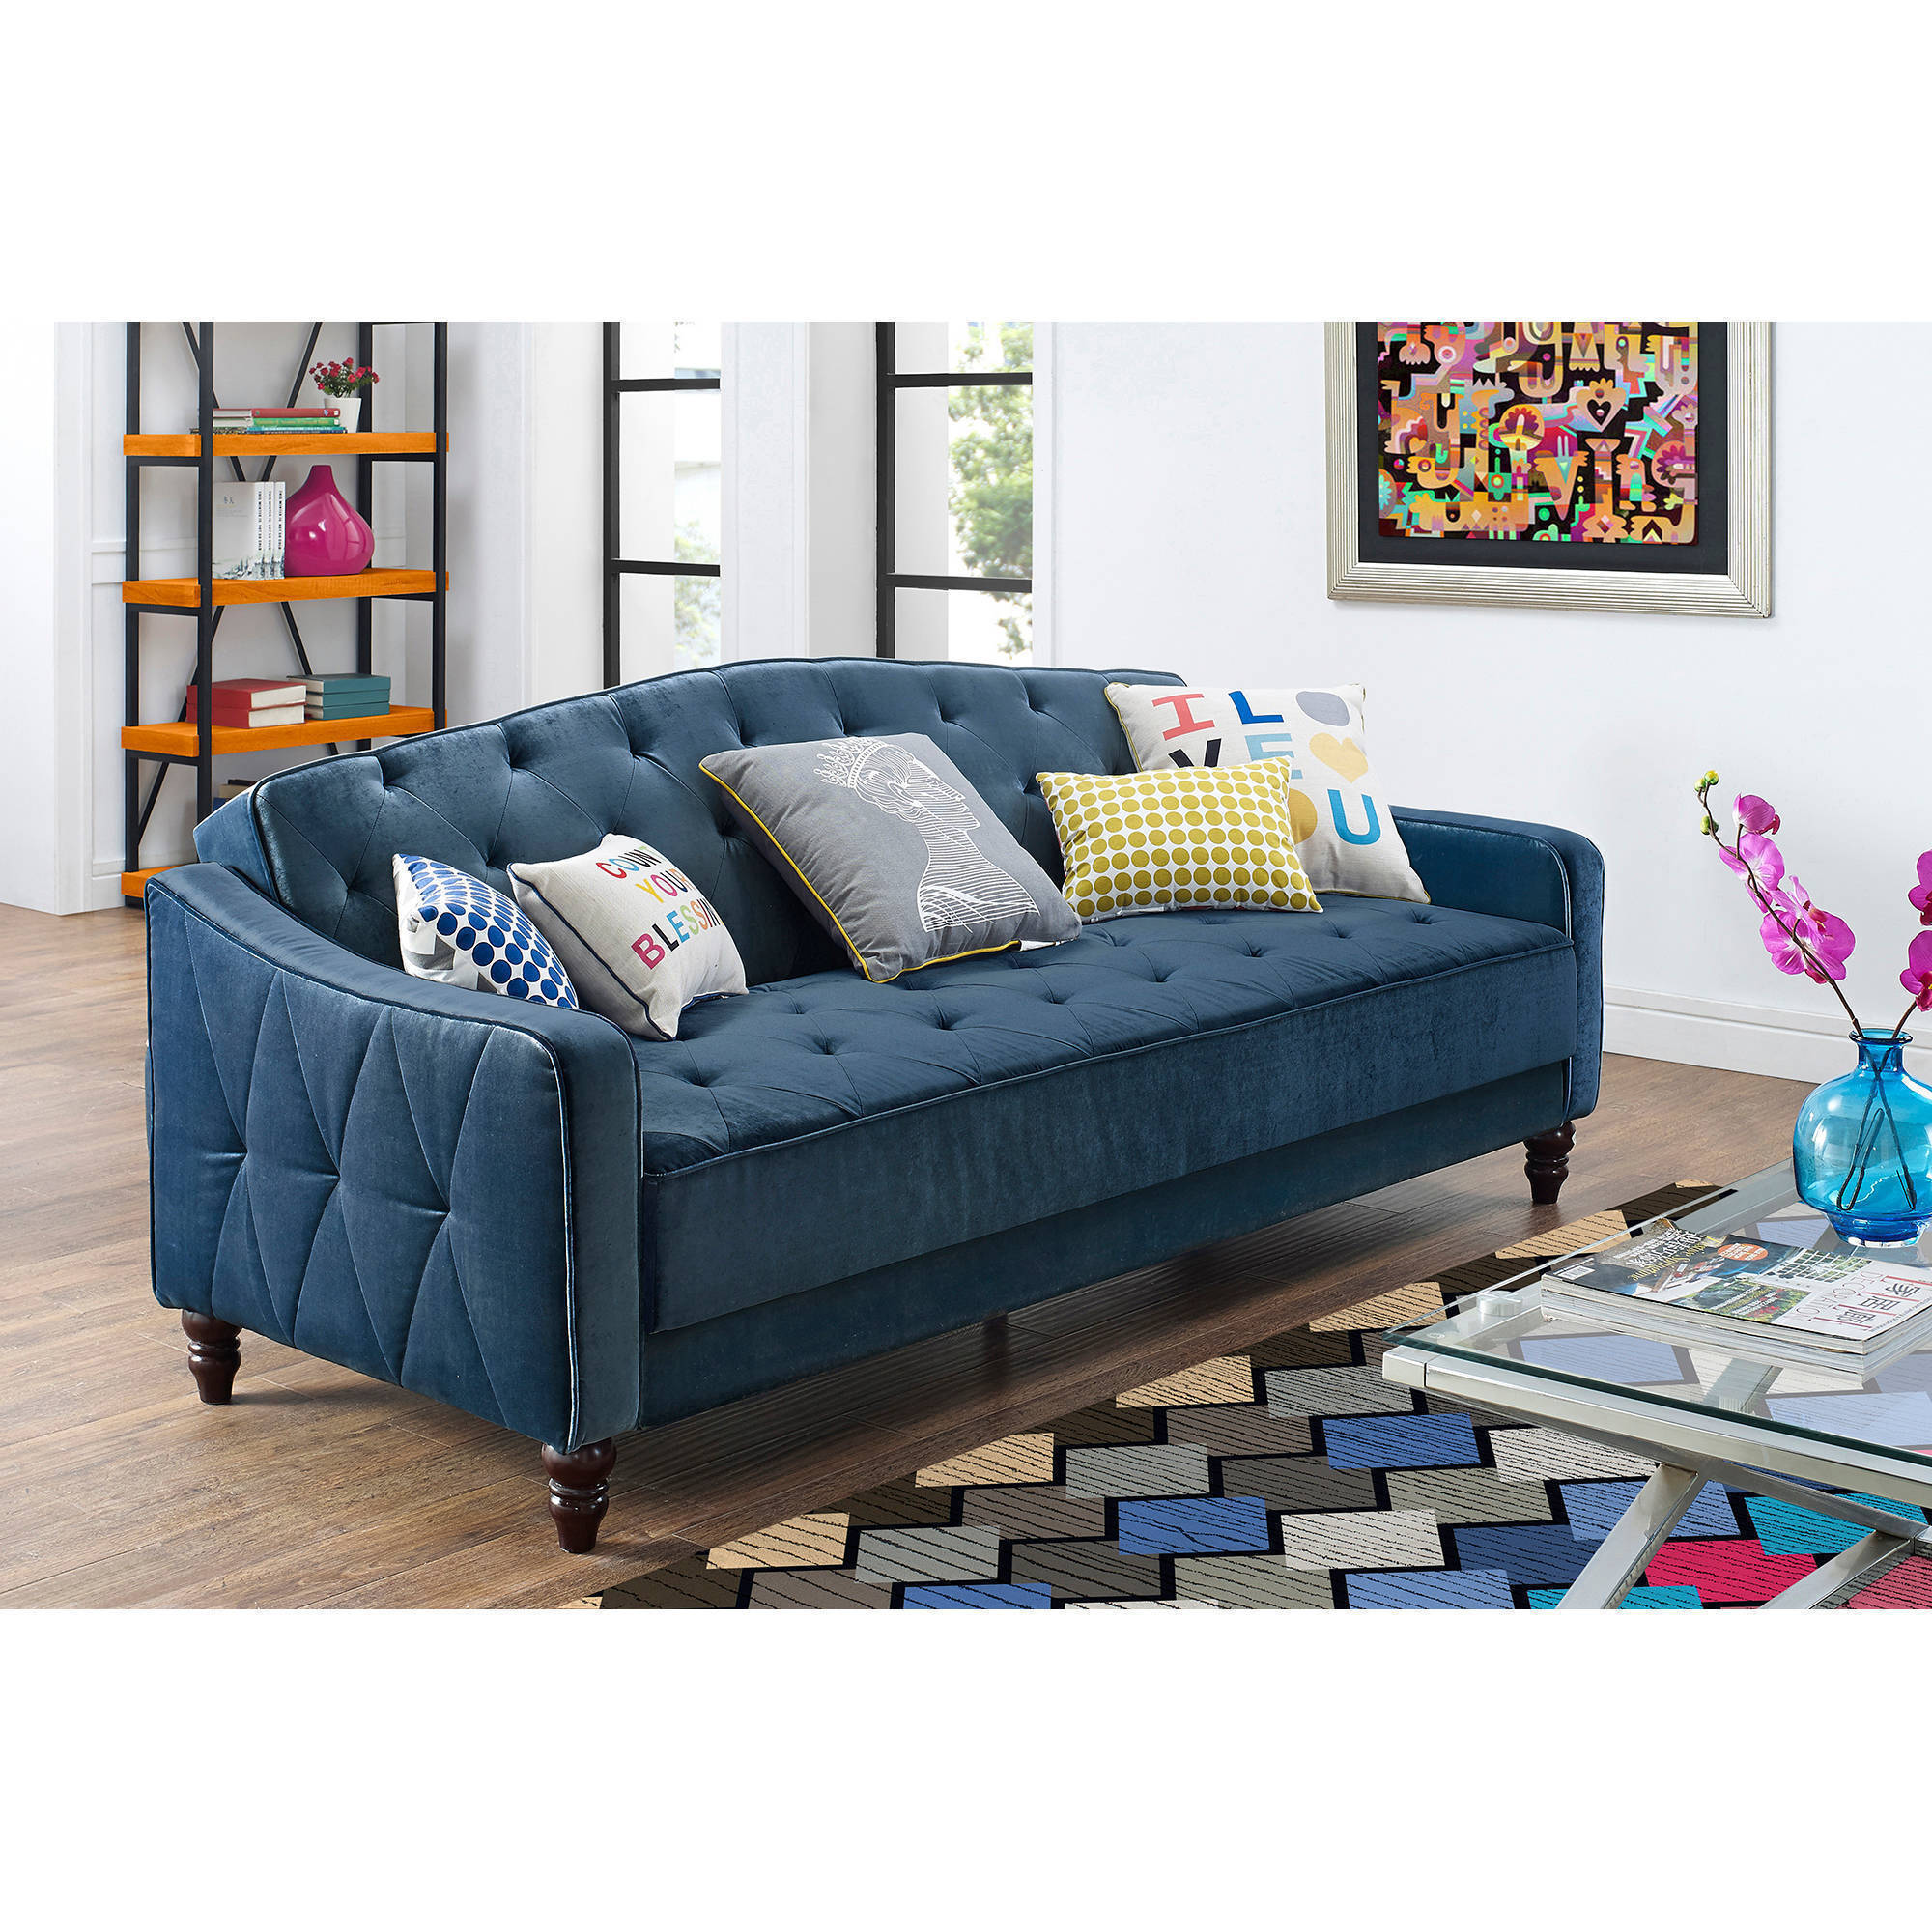 Elita Twin Size Sofa Sleeper with Hidden Storage Beige Walmart